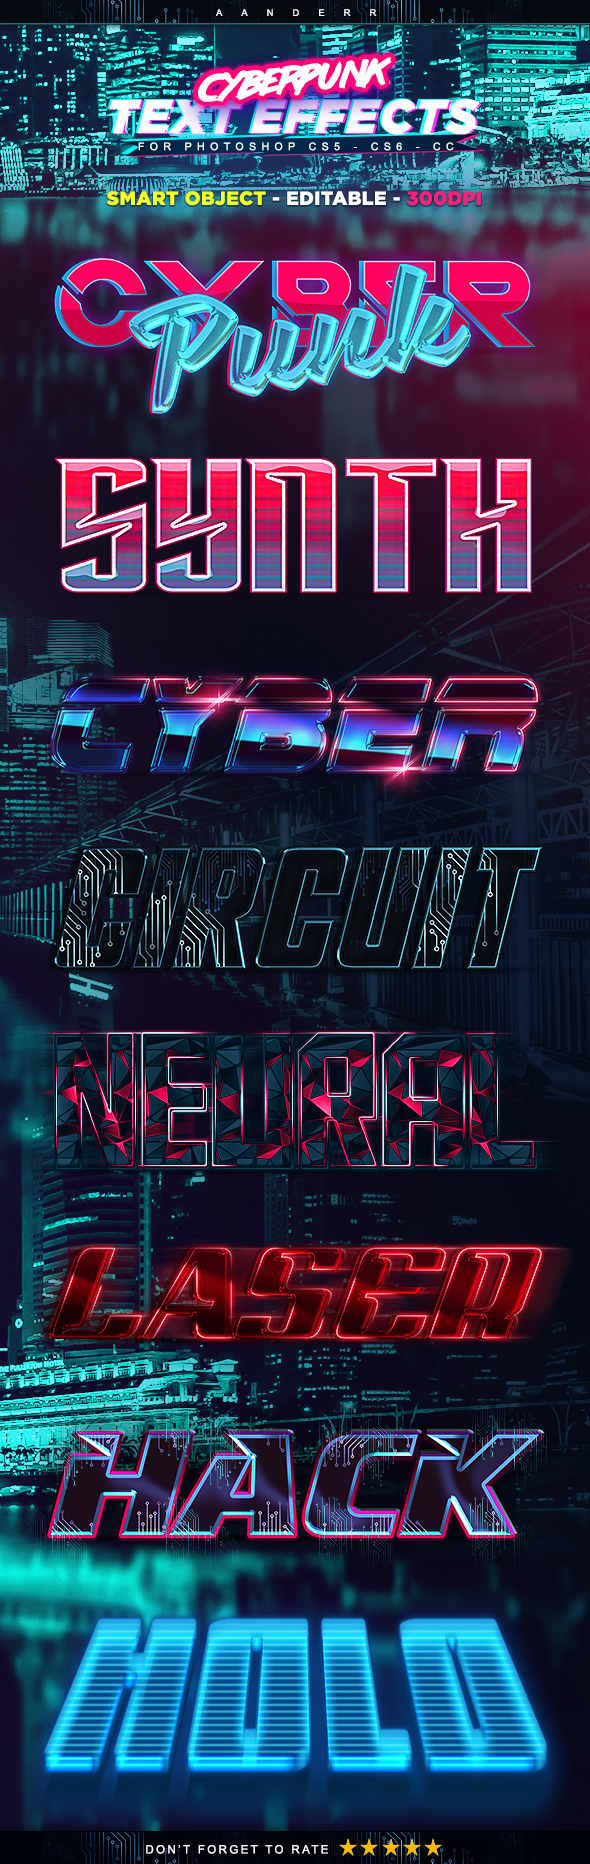 Cyberpunk Graphics, Designs & Templates from GraphicRiver